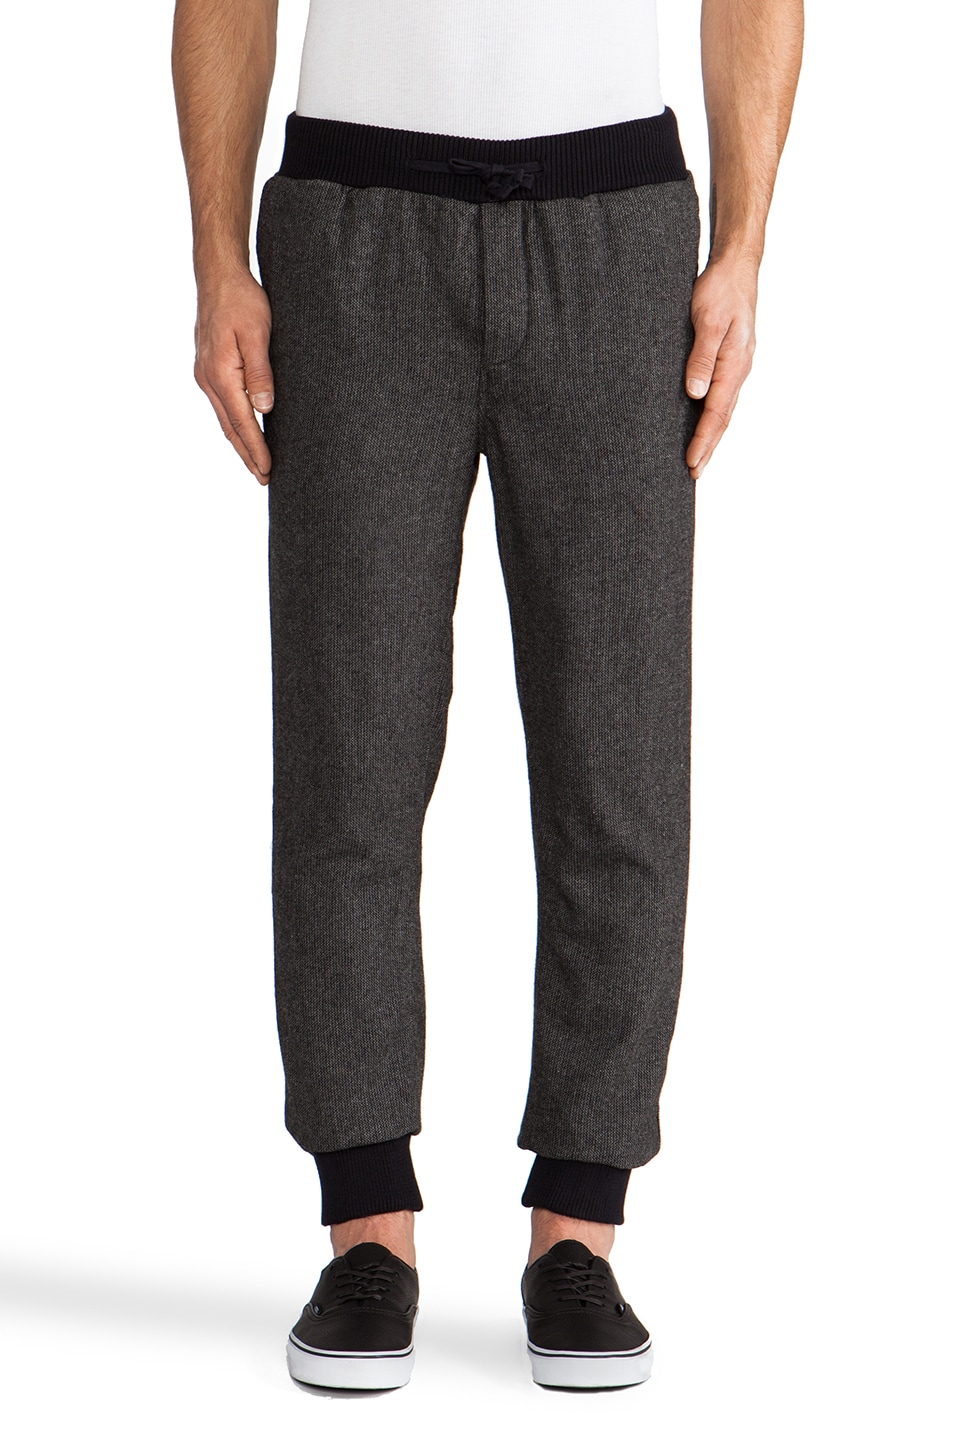 Scotch & Soda Wooly Pant w/ Drawcord in Grey/Navy